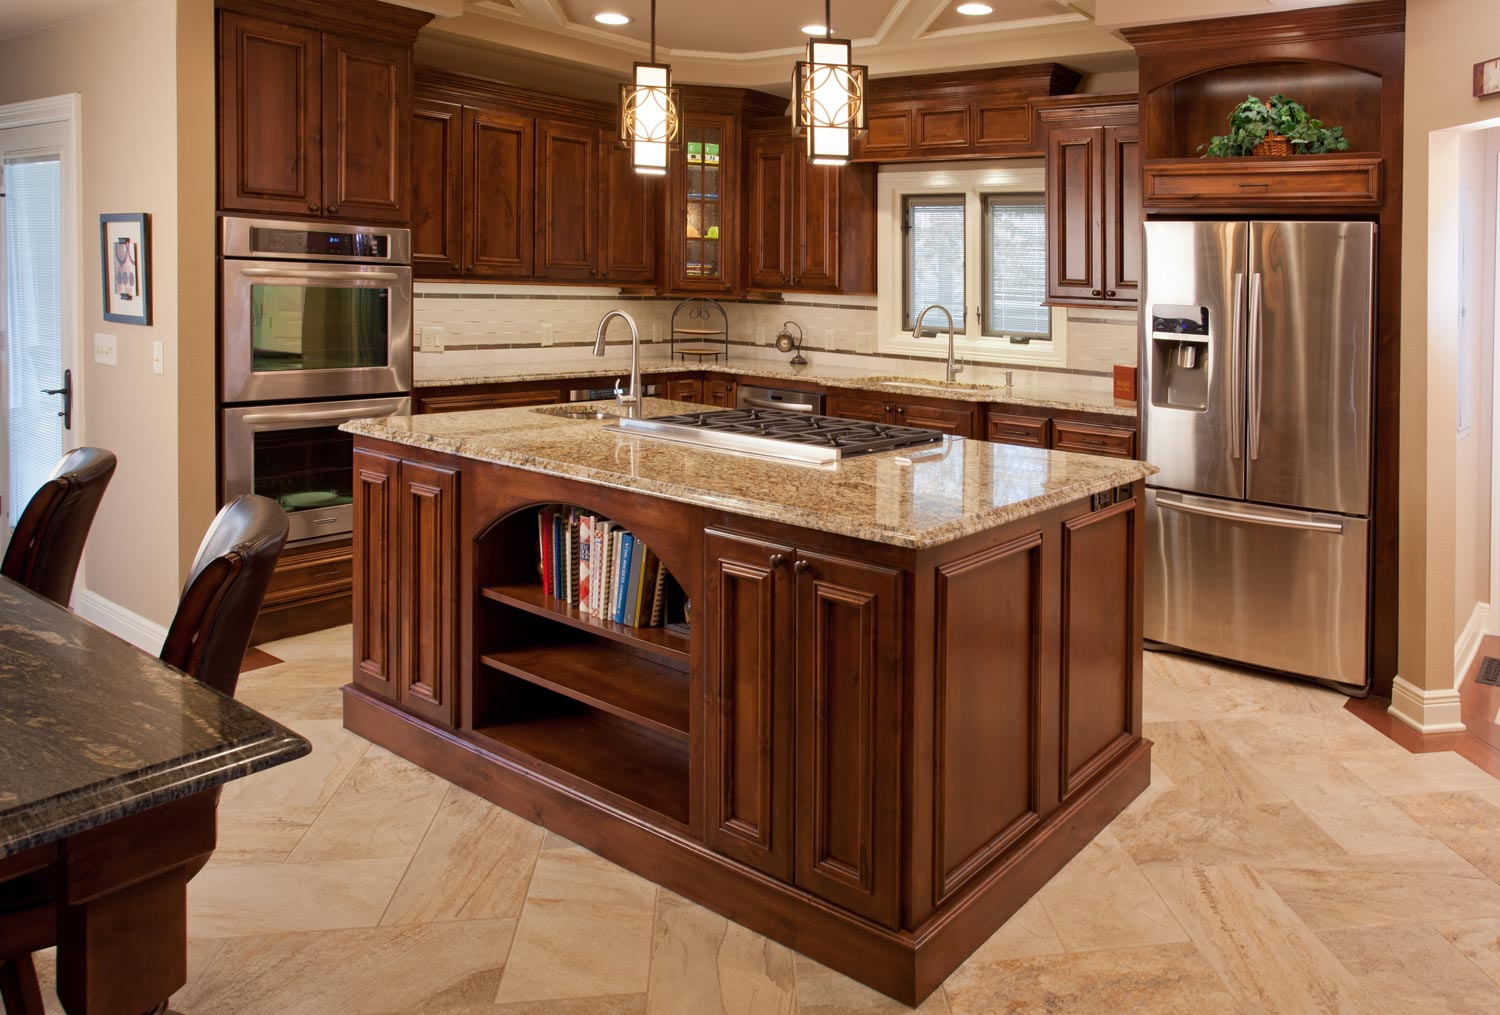 Example of home remodeling design featuring a high-end kitchen with a large marble and wood island